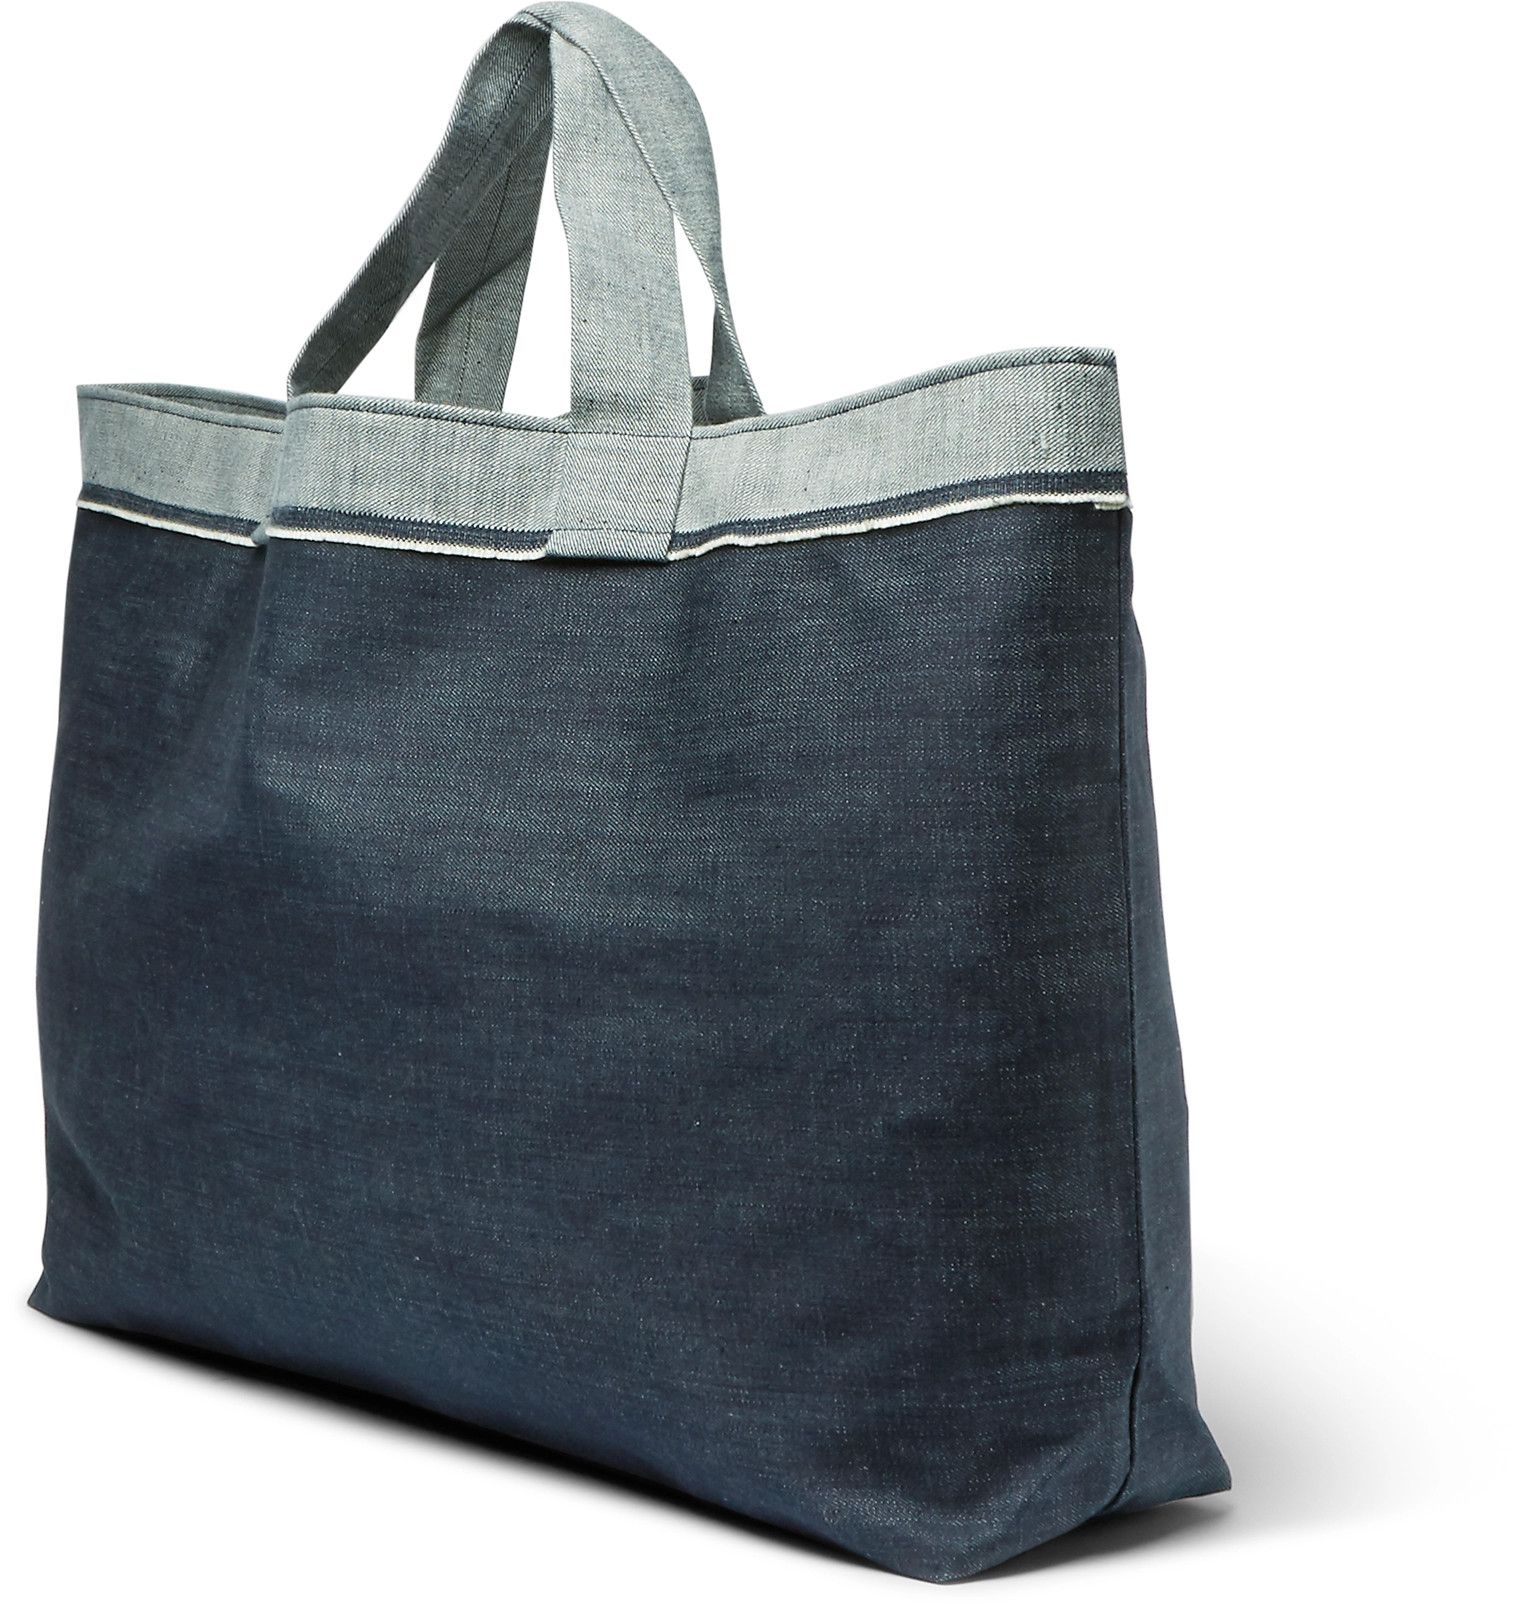 Cleverly Laundry Two Tone Denim Laundry Bag Bags Shopper Bag Laundry Tote